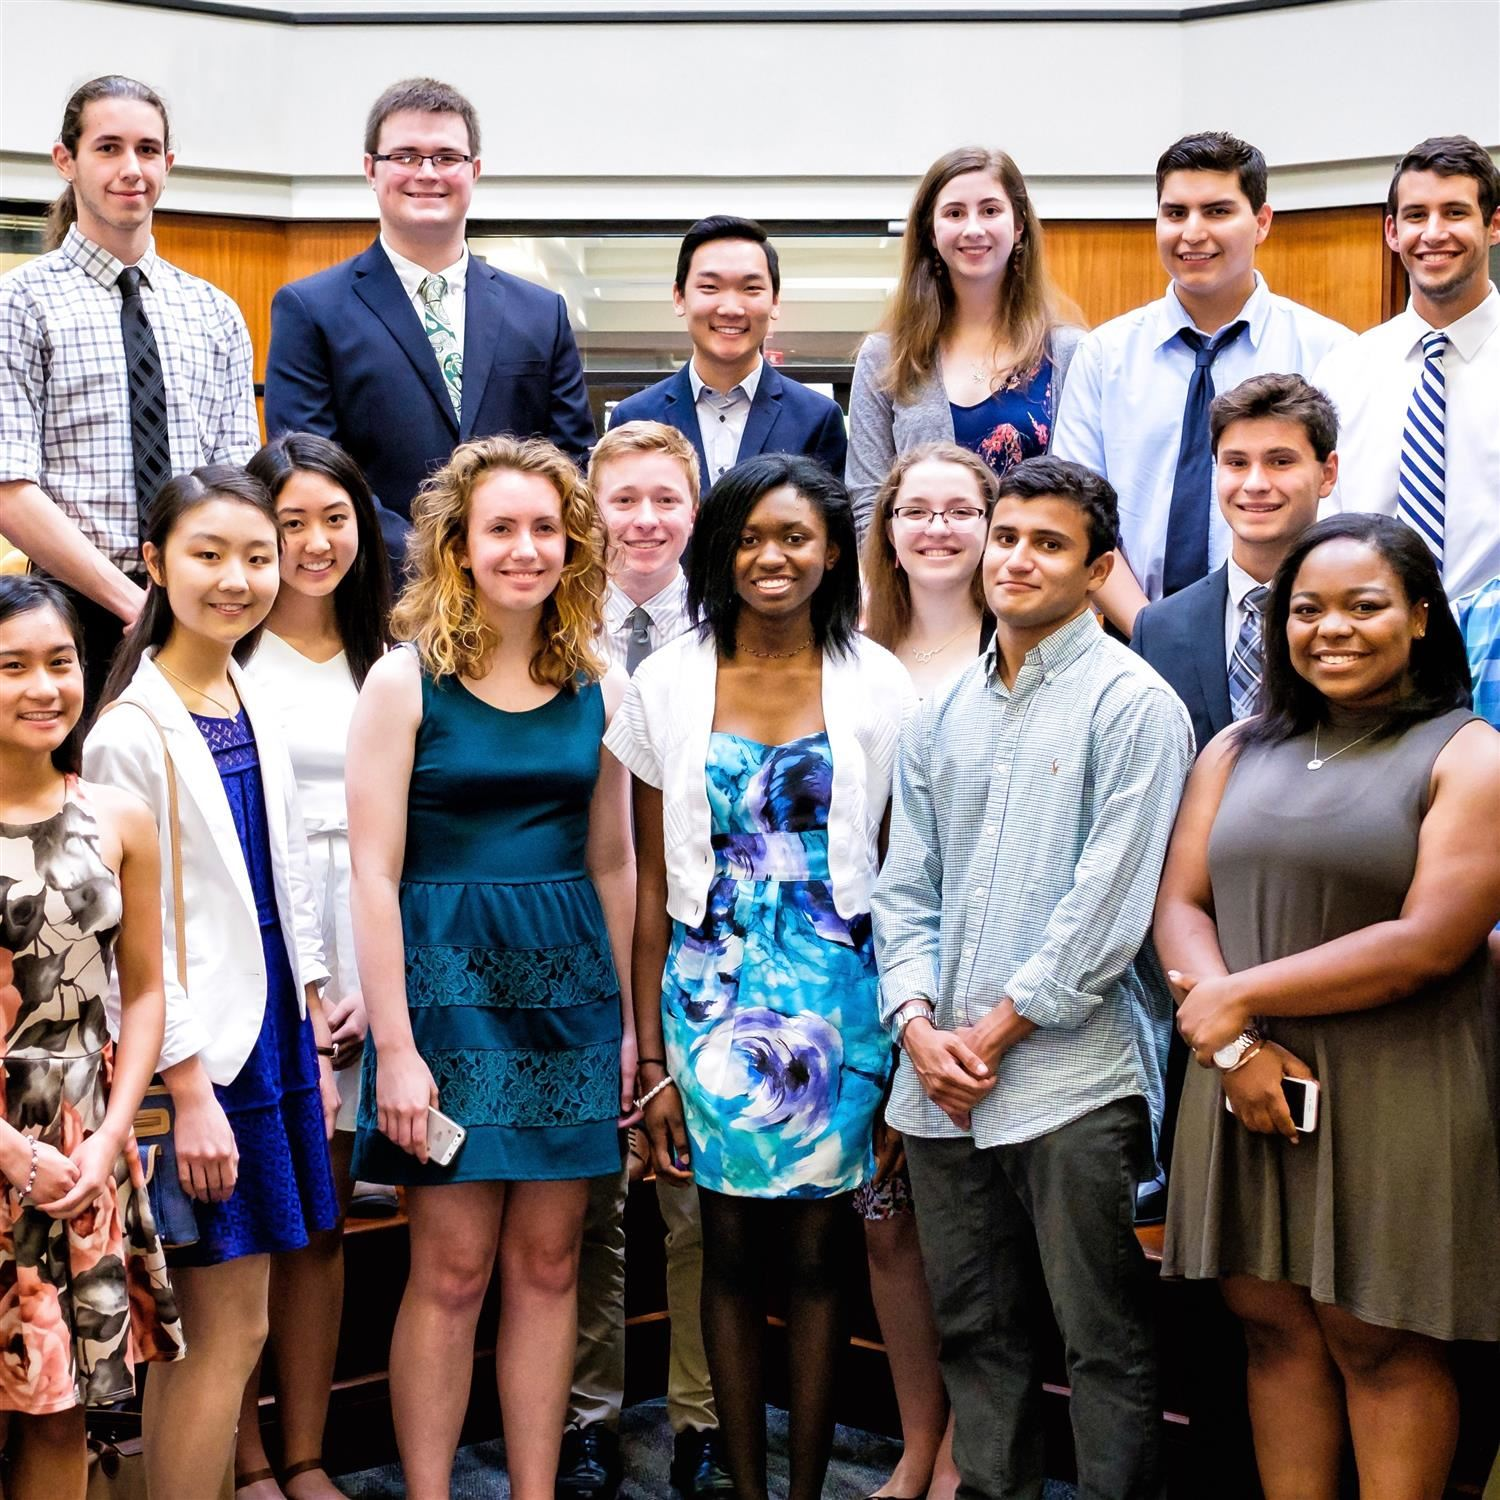 Class of 2017 Valedictorians honored at May 2 Board of Education meeting